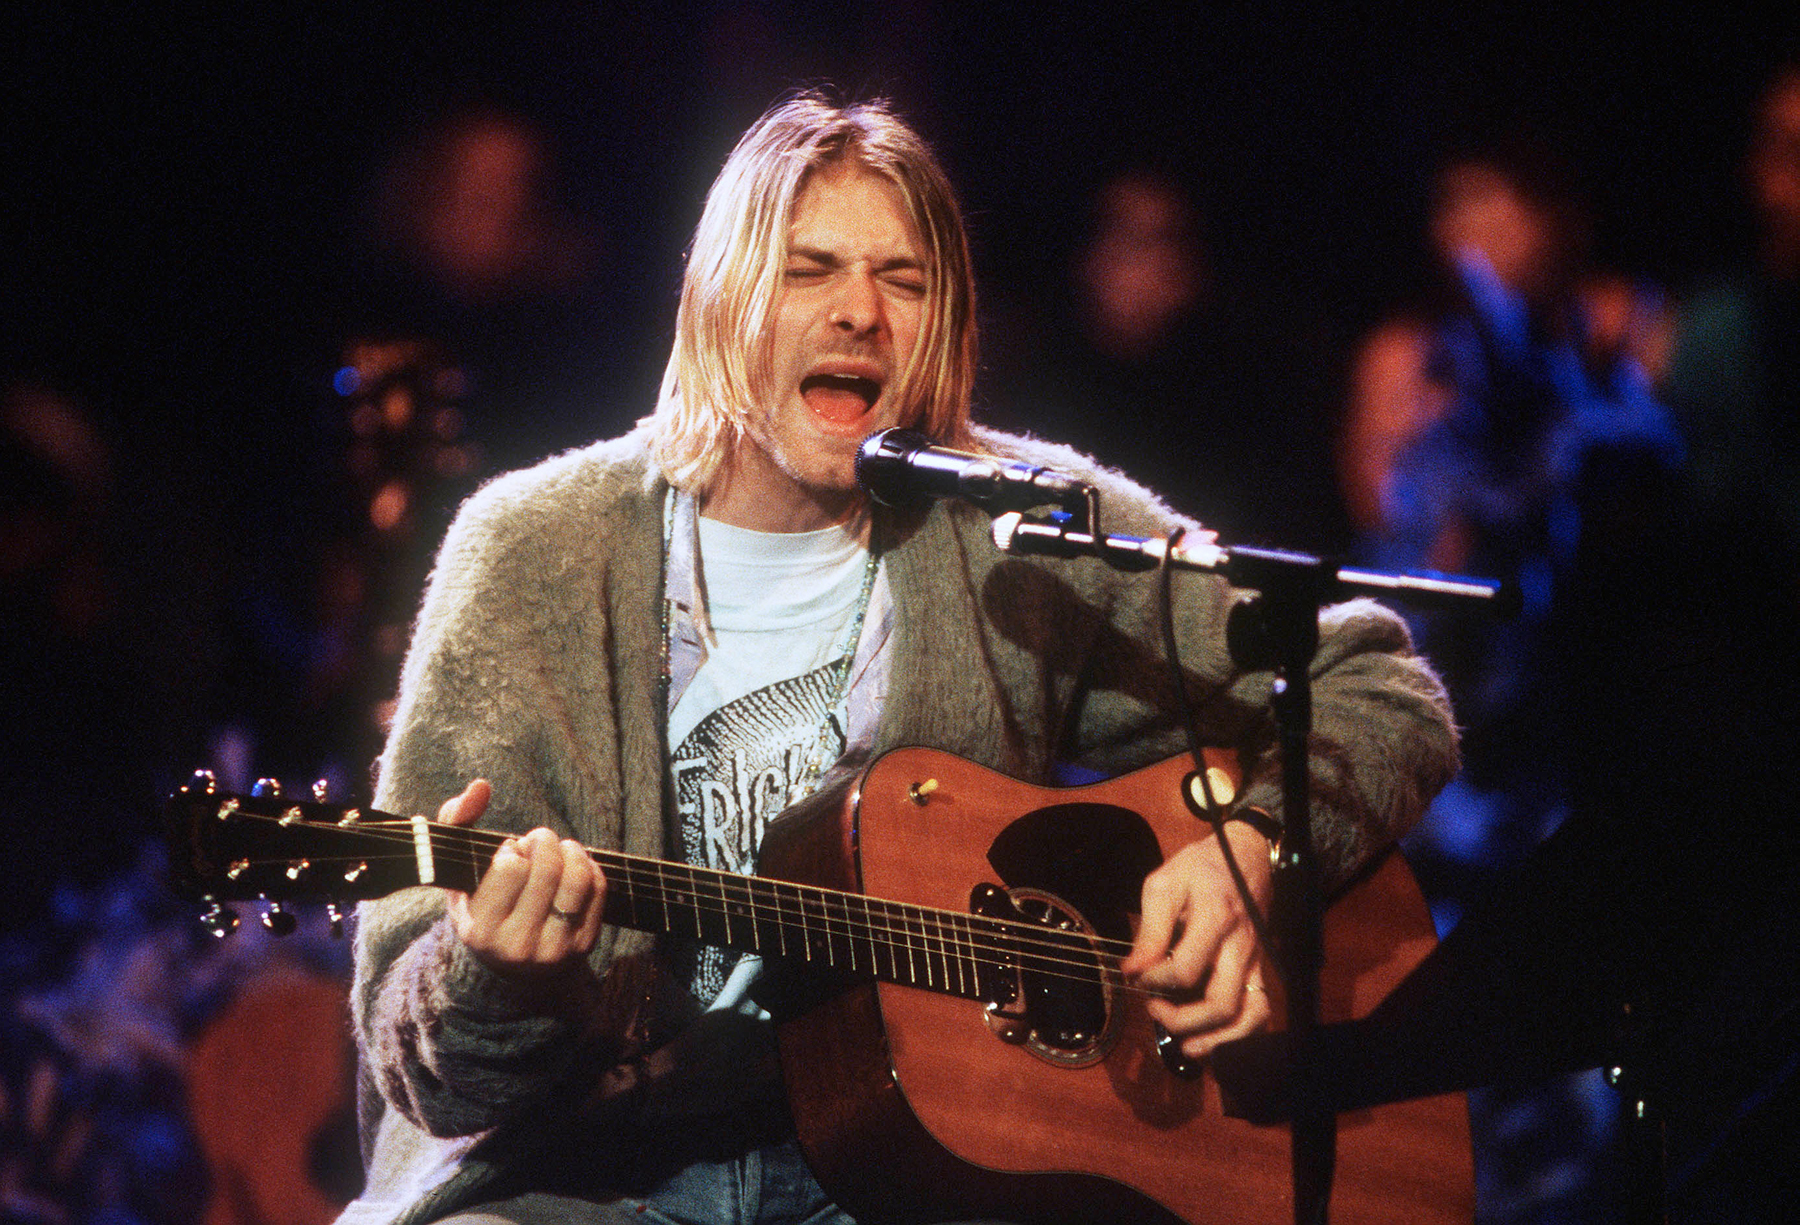 Nirvana's Road to the Rock and Roll Hall of Fame